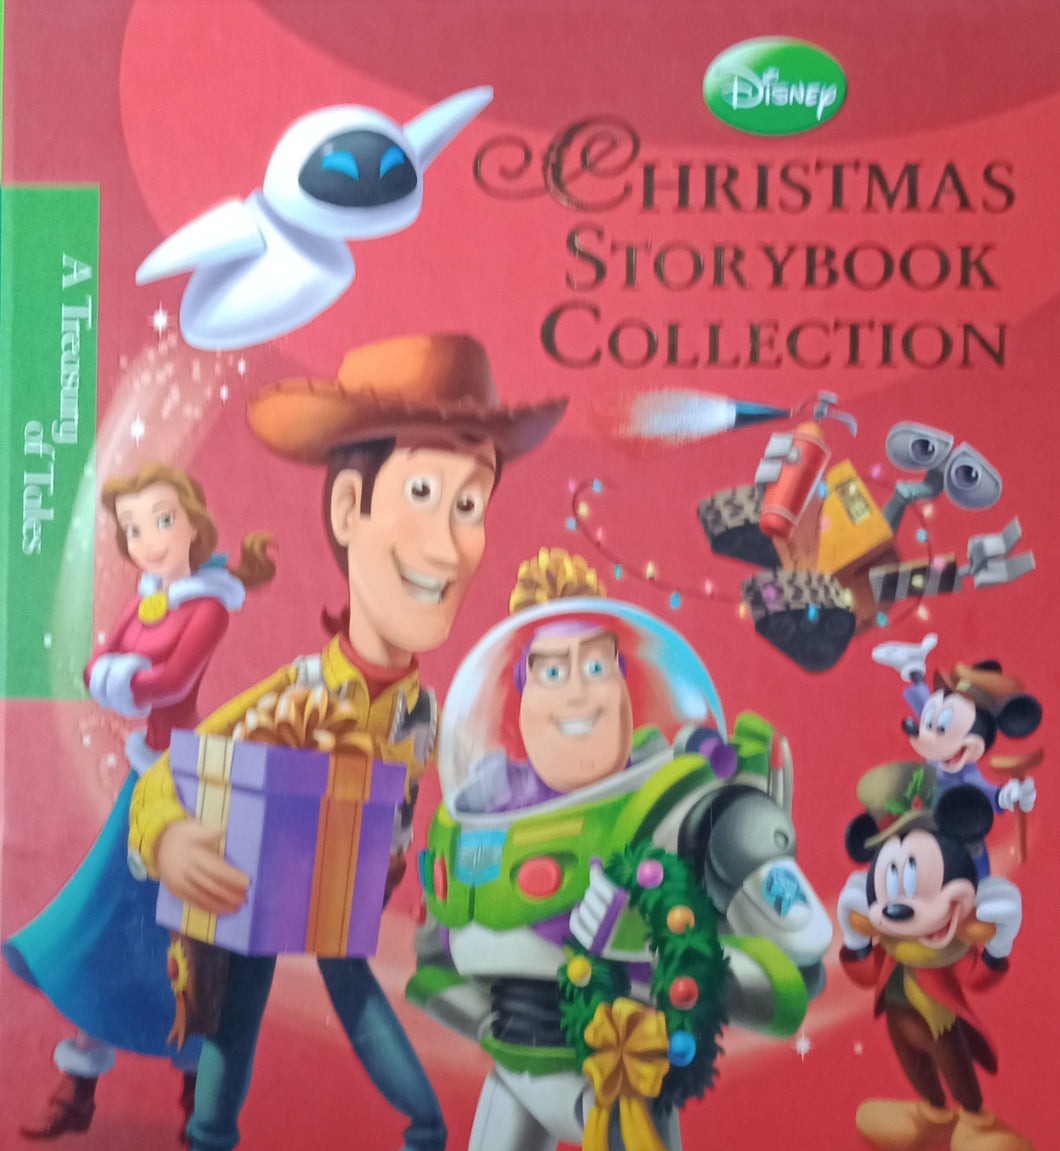 Chrismas Storybook Collection